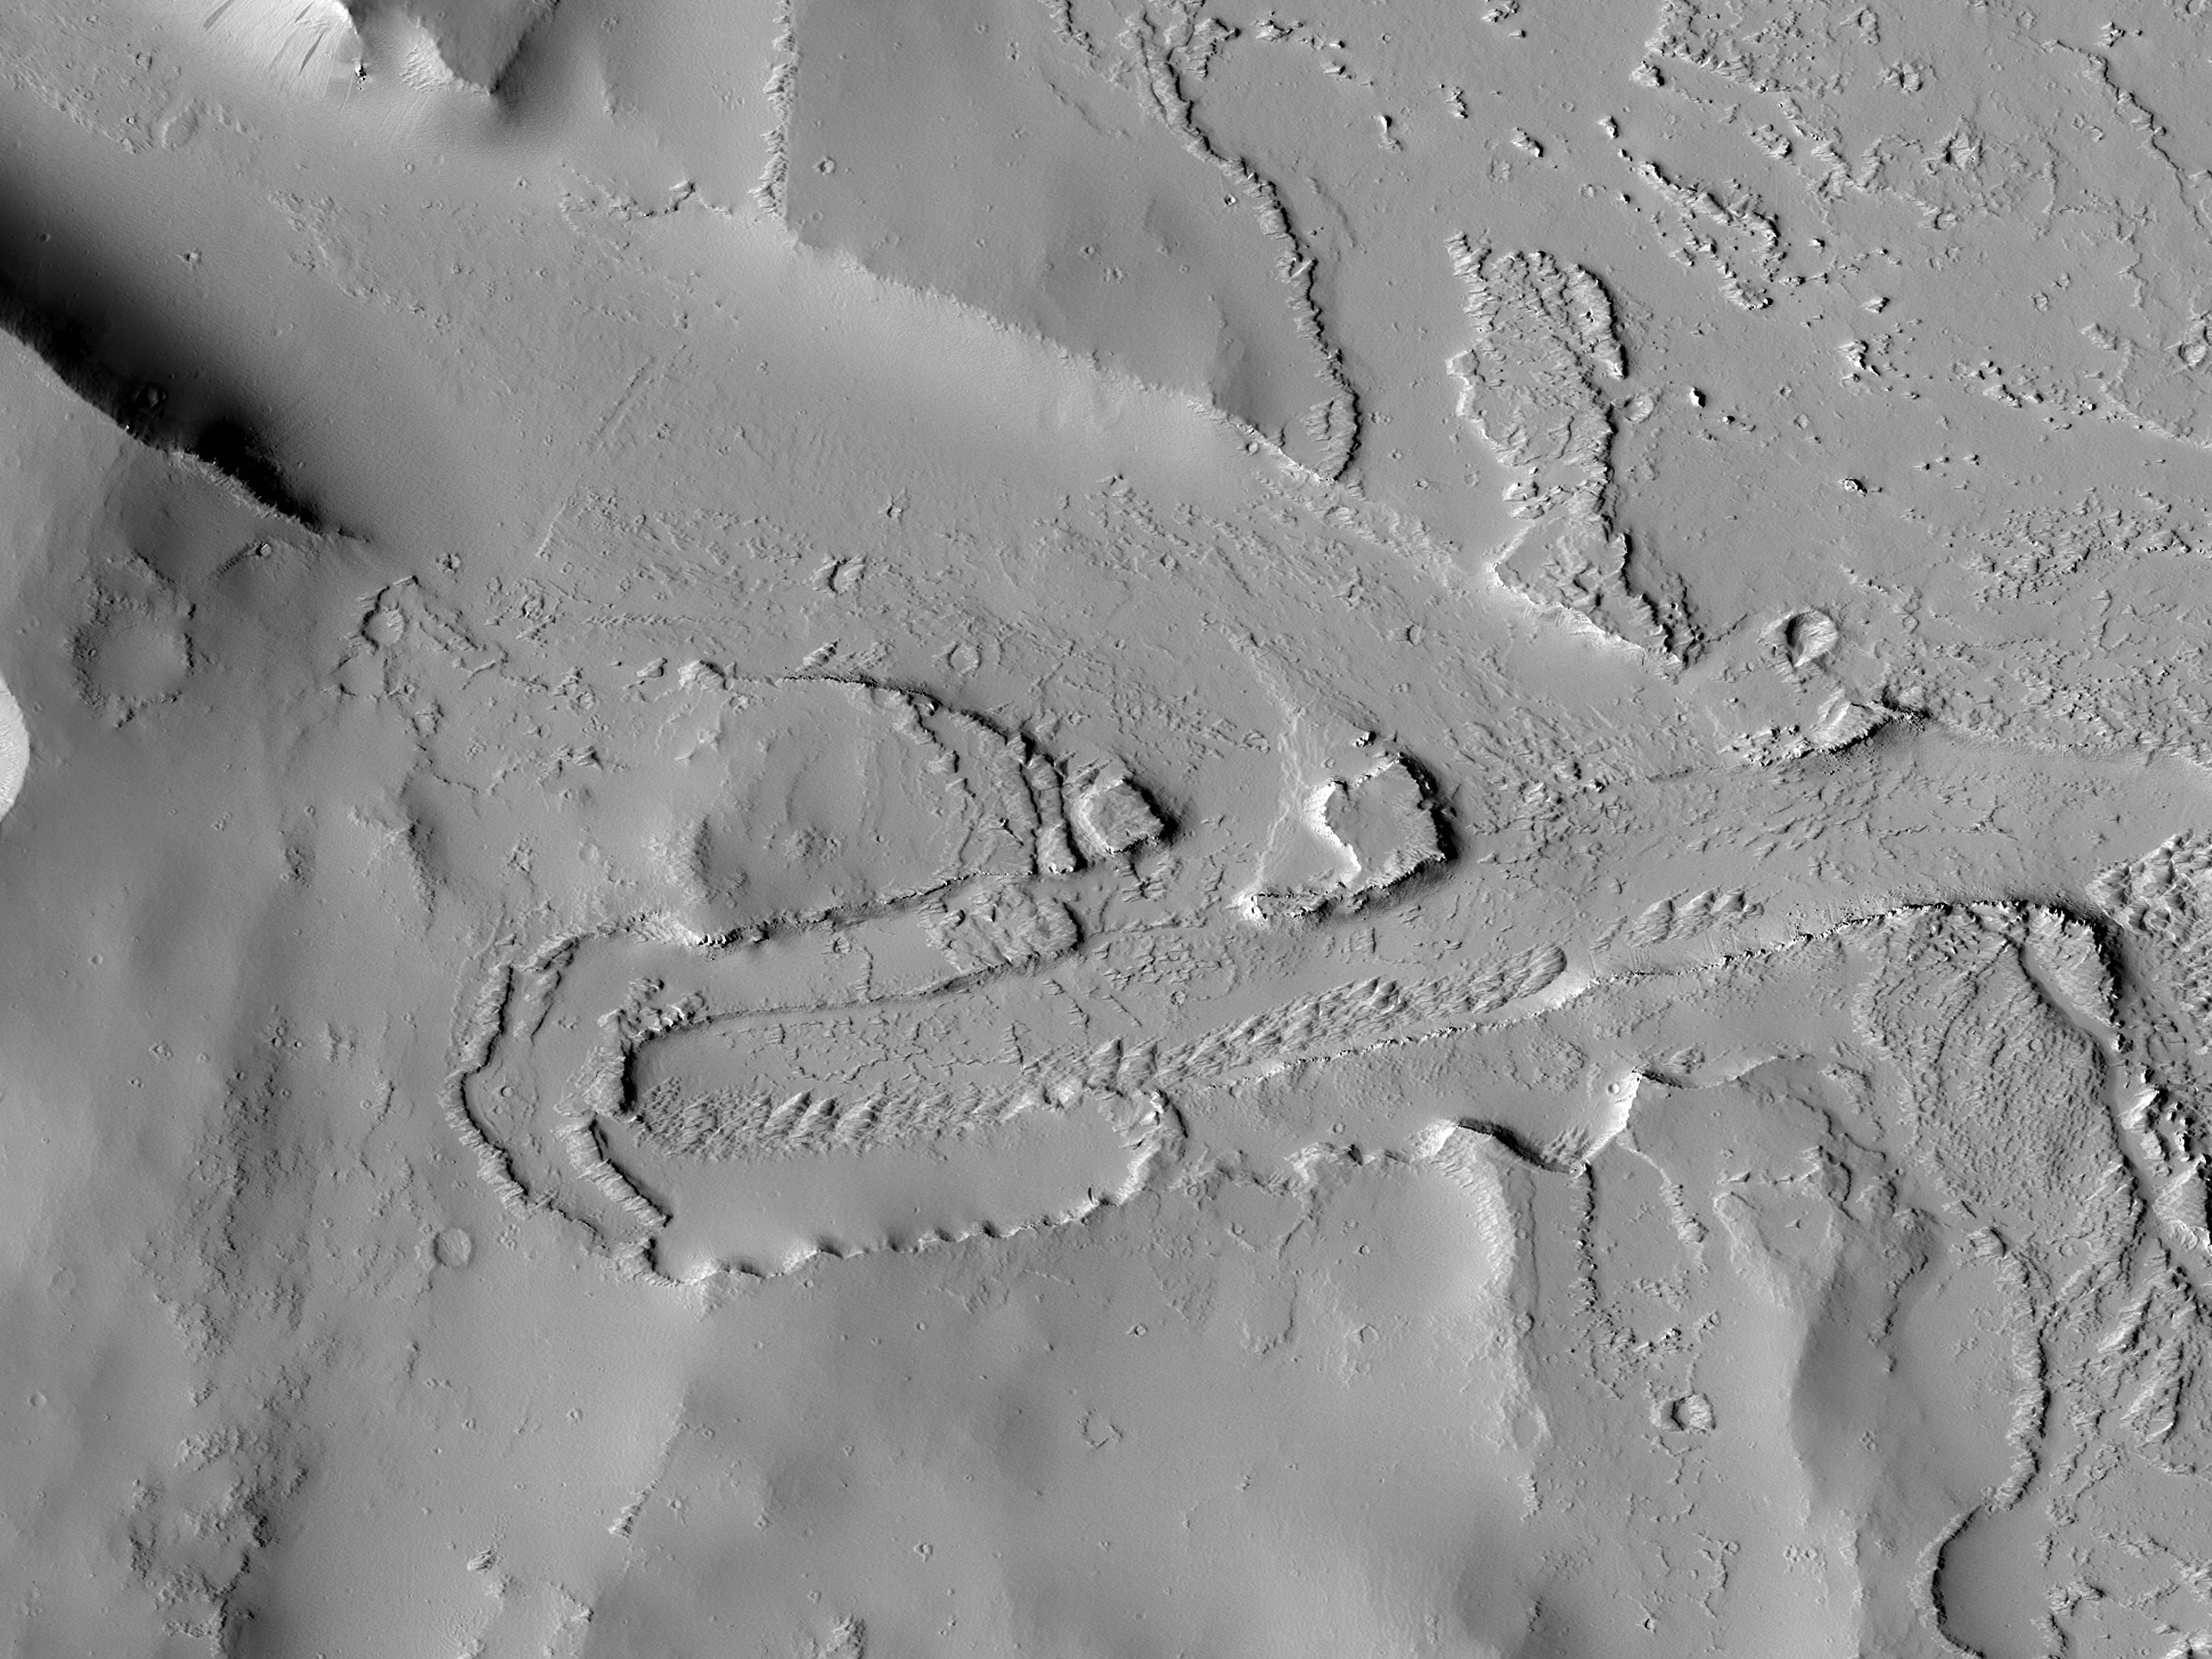 A Terraced Trough near Ceraunius Fossae